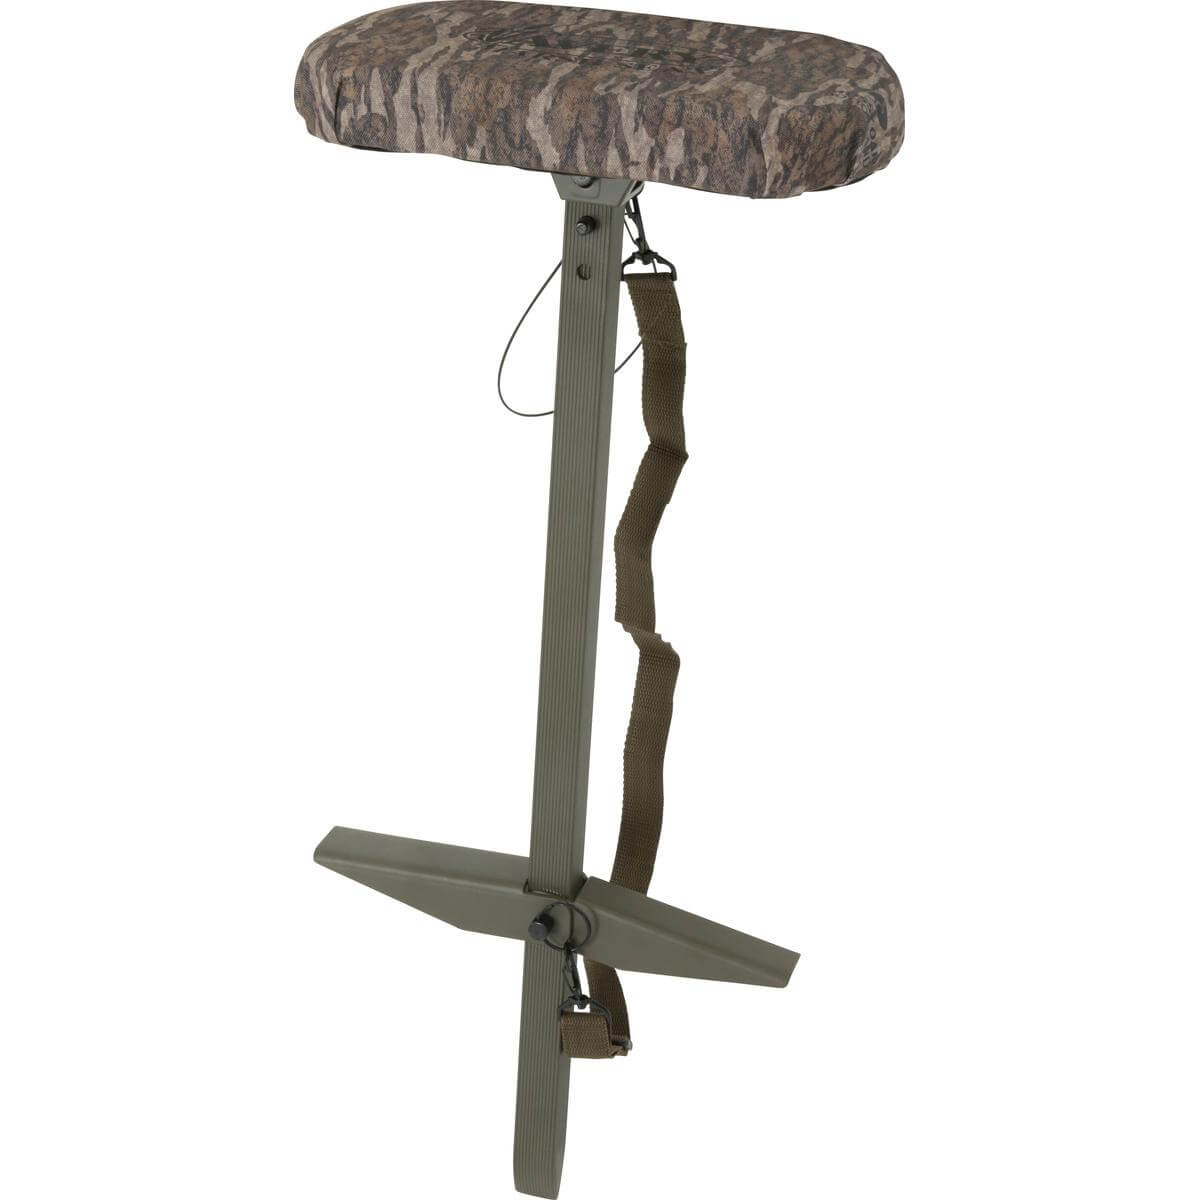 duck blind chair zeta desk hunting chairs stools for the field marsh 24 products